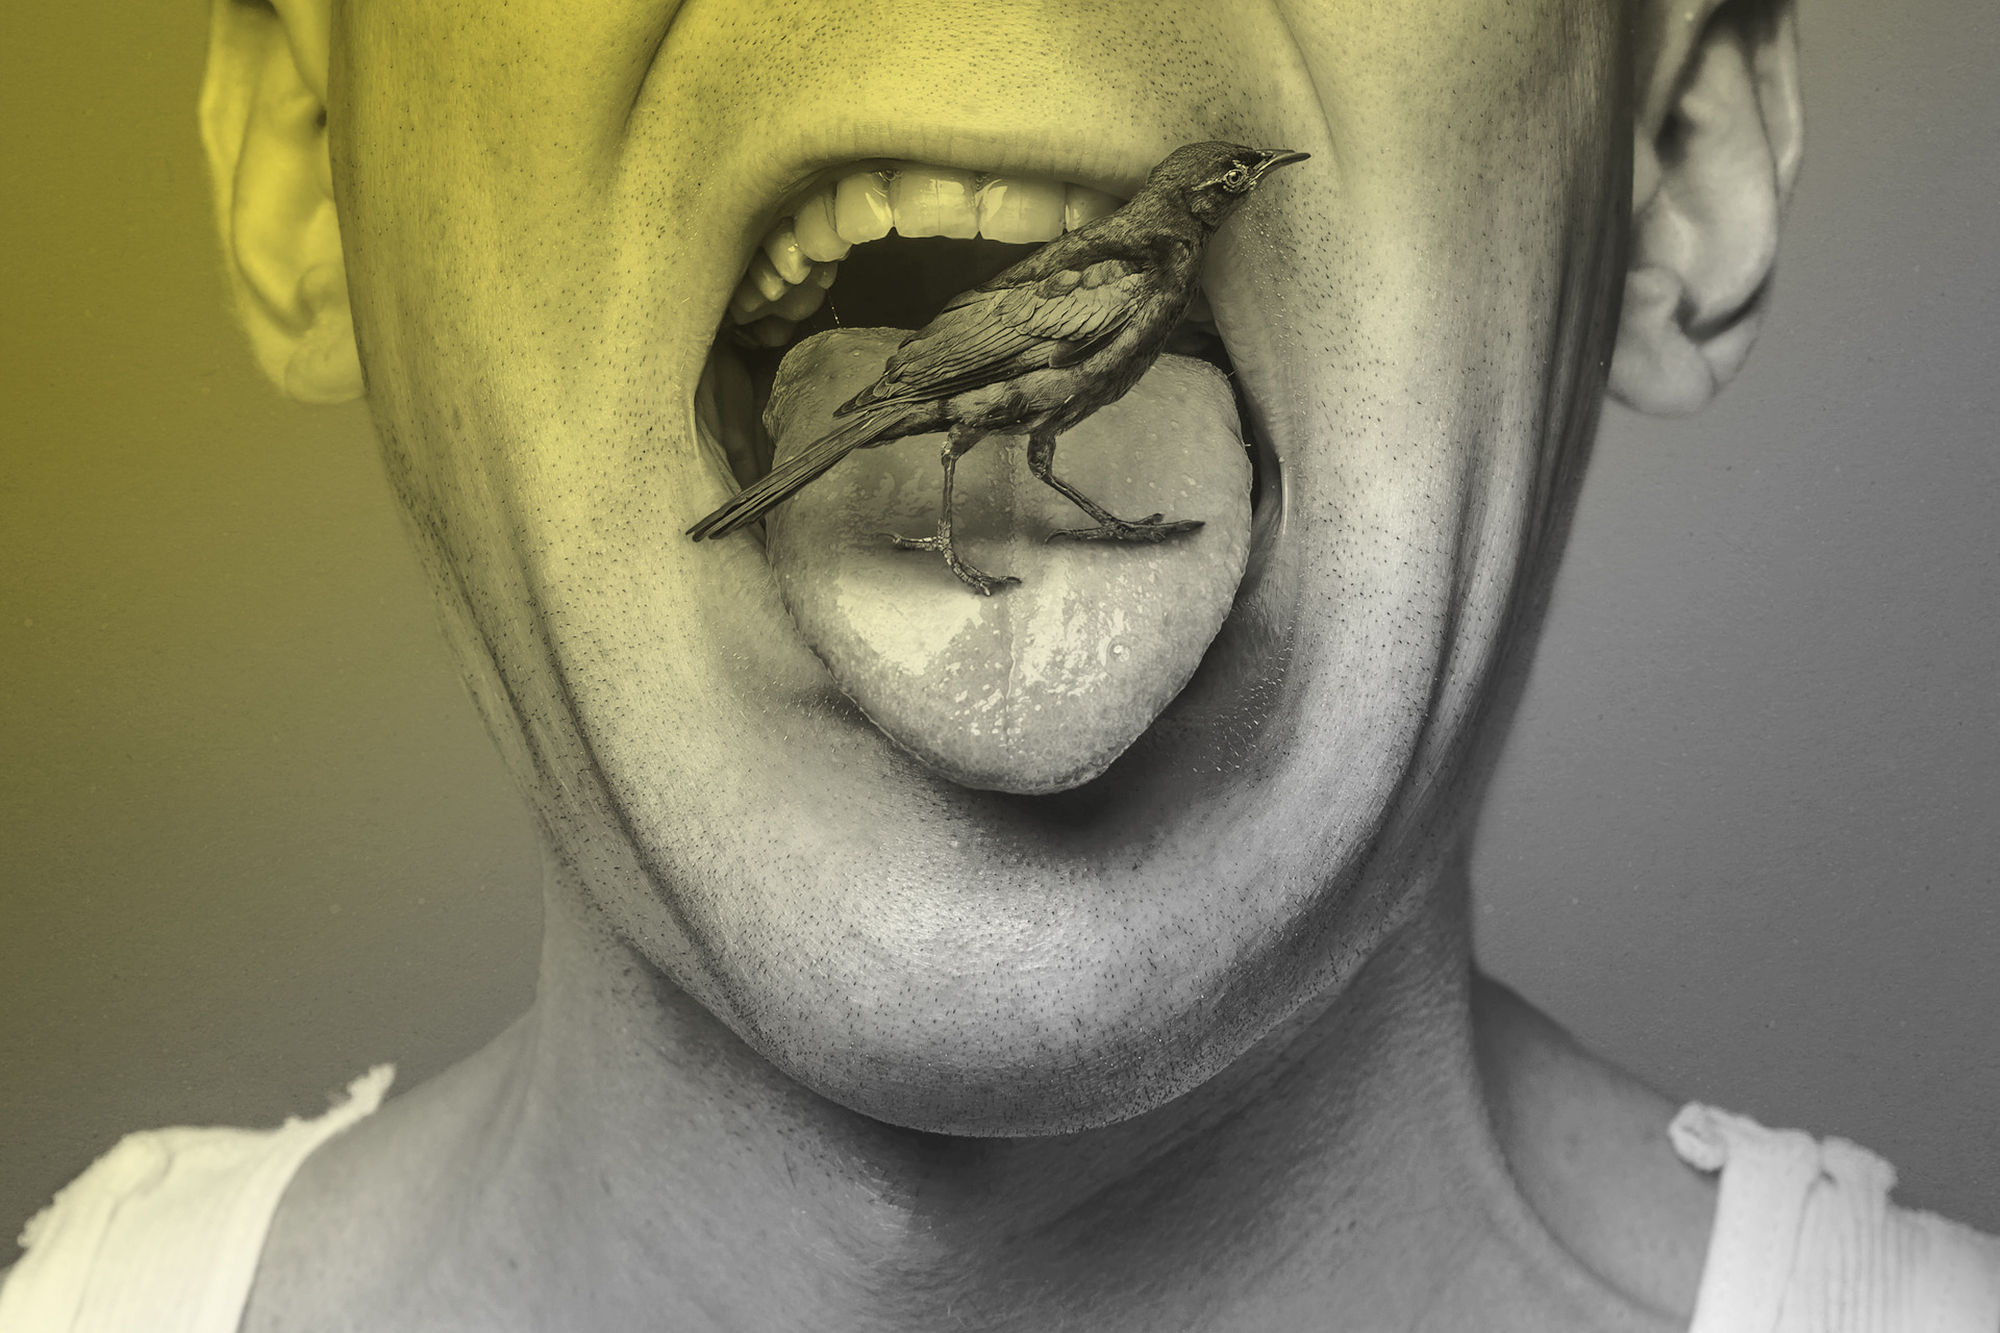 bird in mouth, portrait, scene360 awards